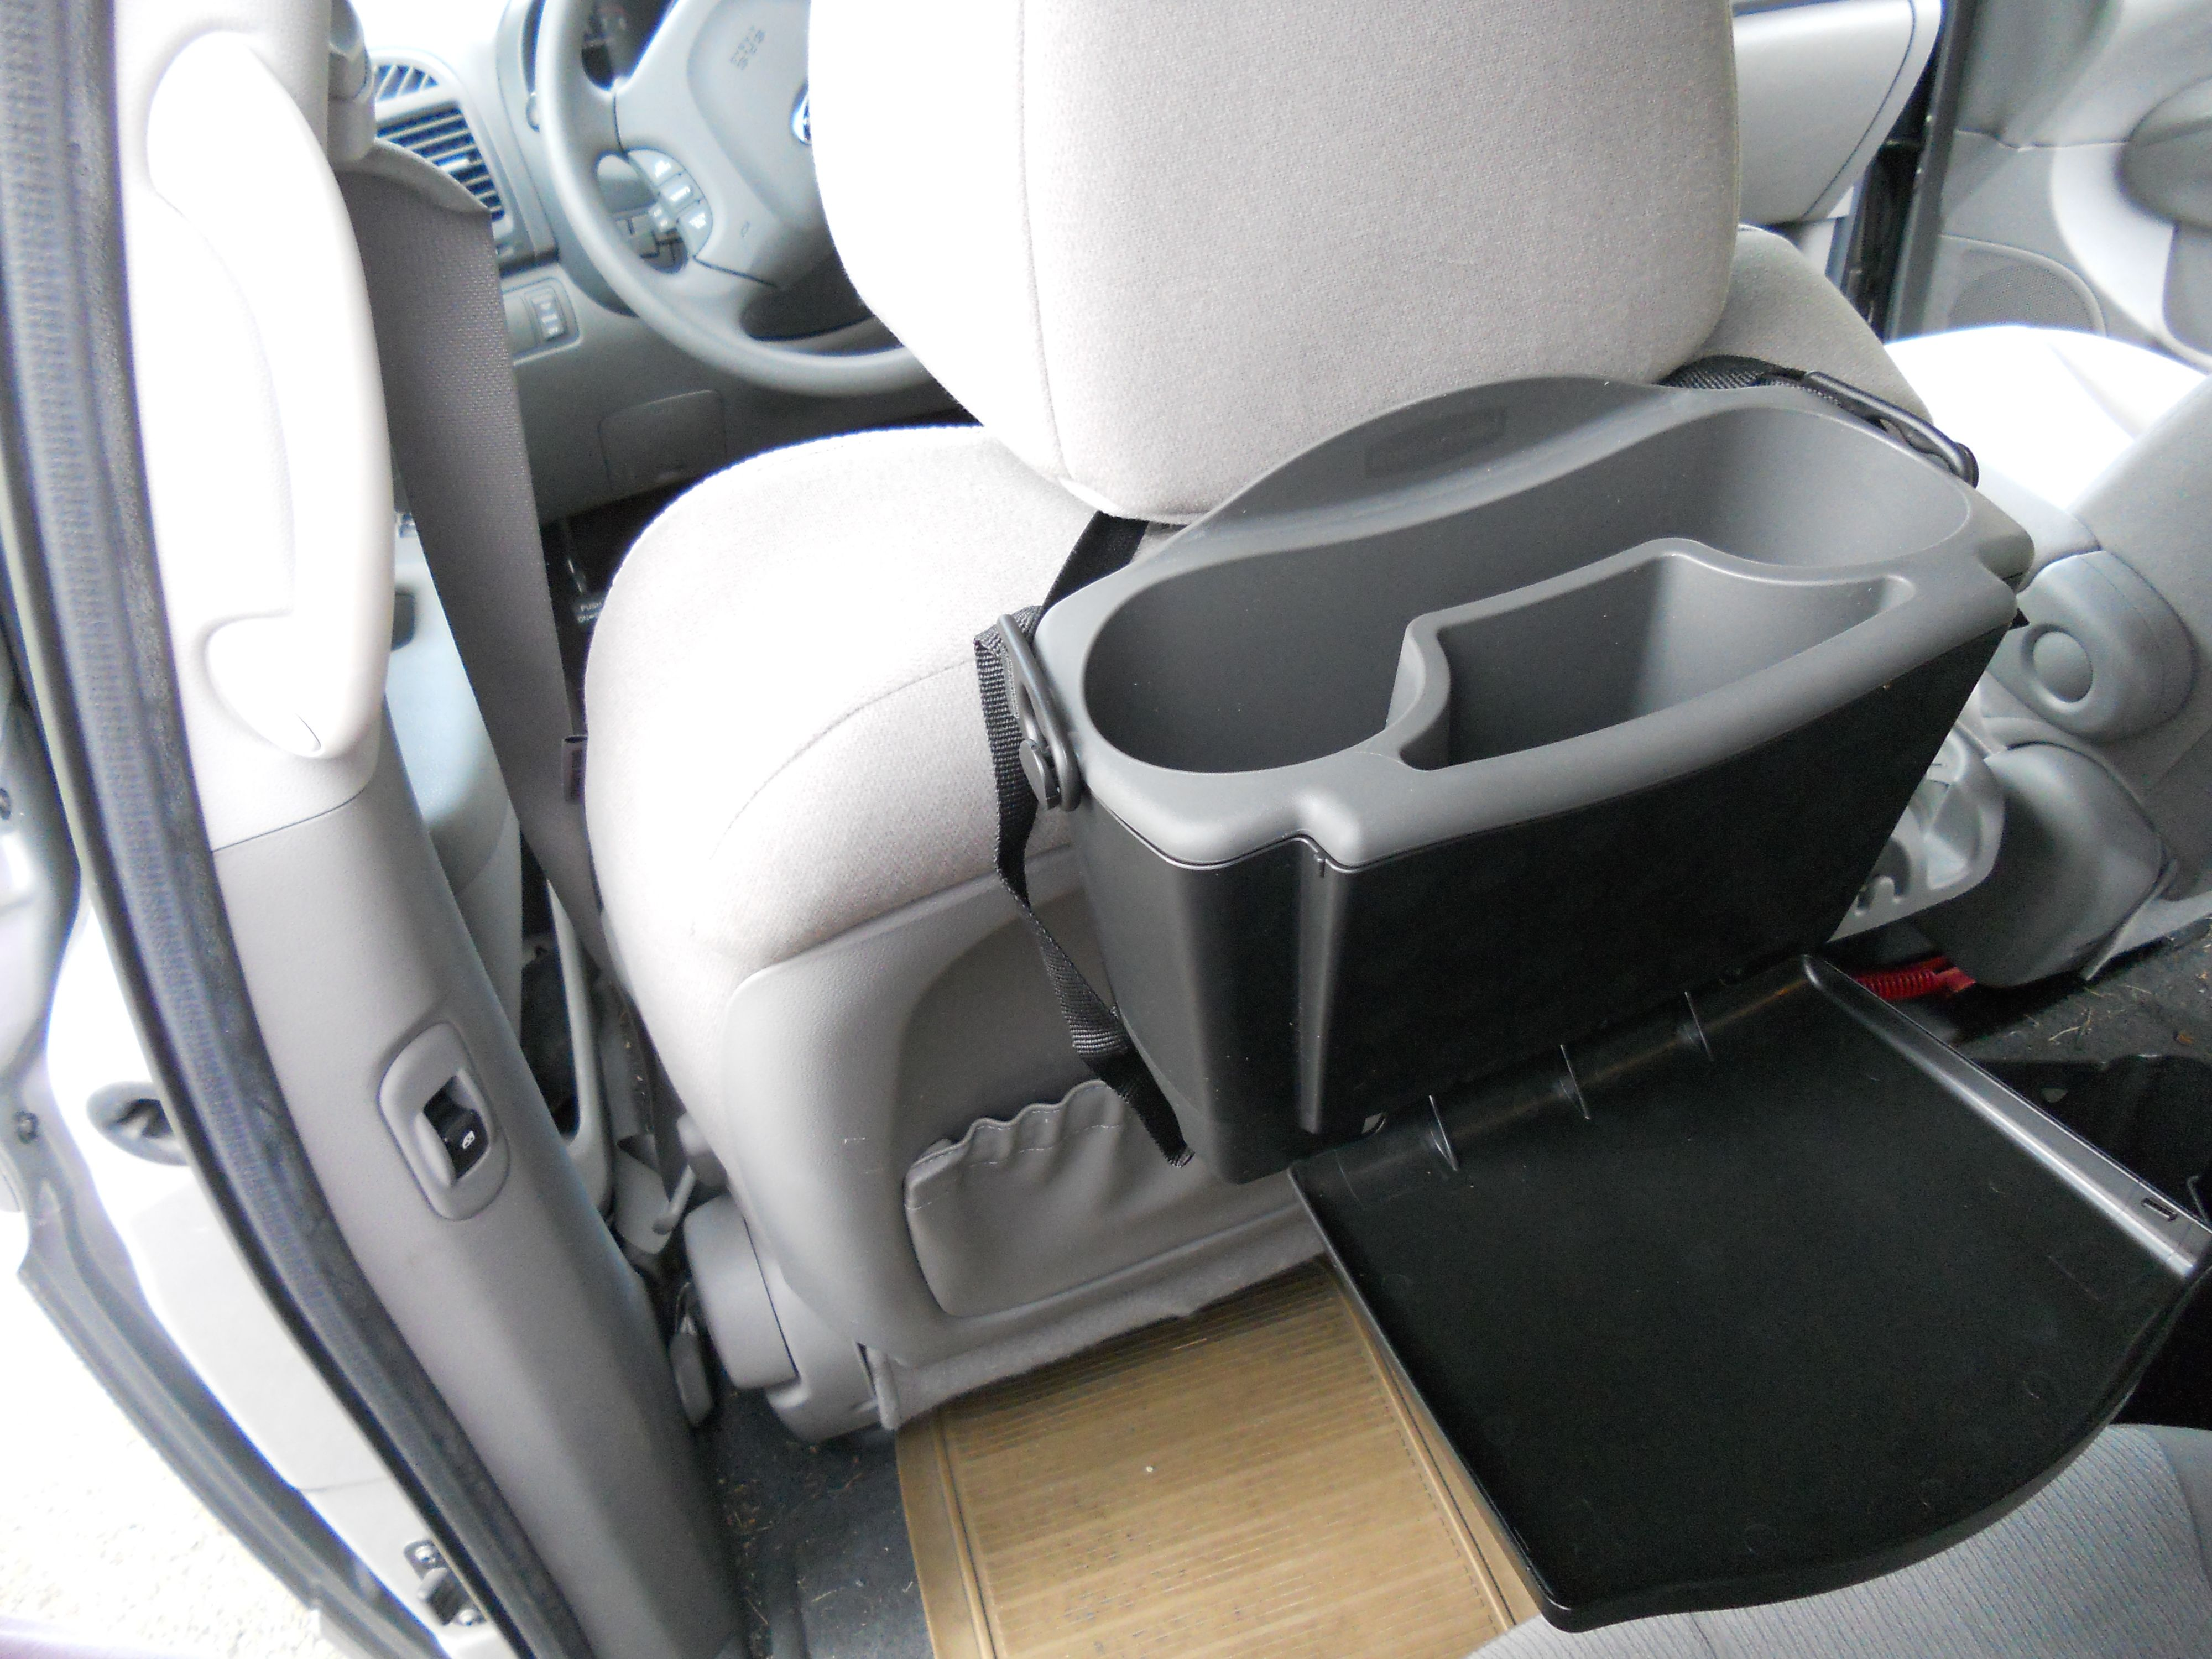 Rubbermaid Car Organization Products | Car interior | Pinterest ...